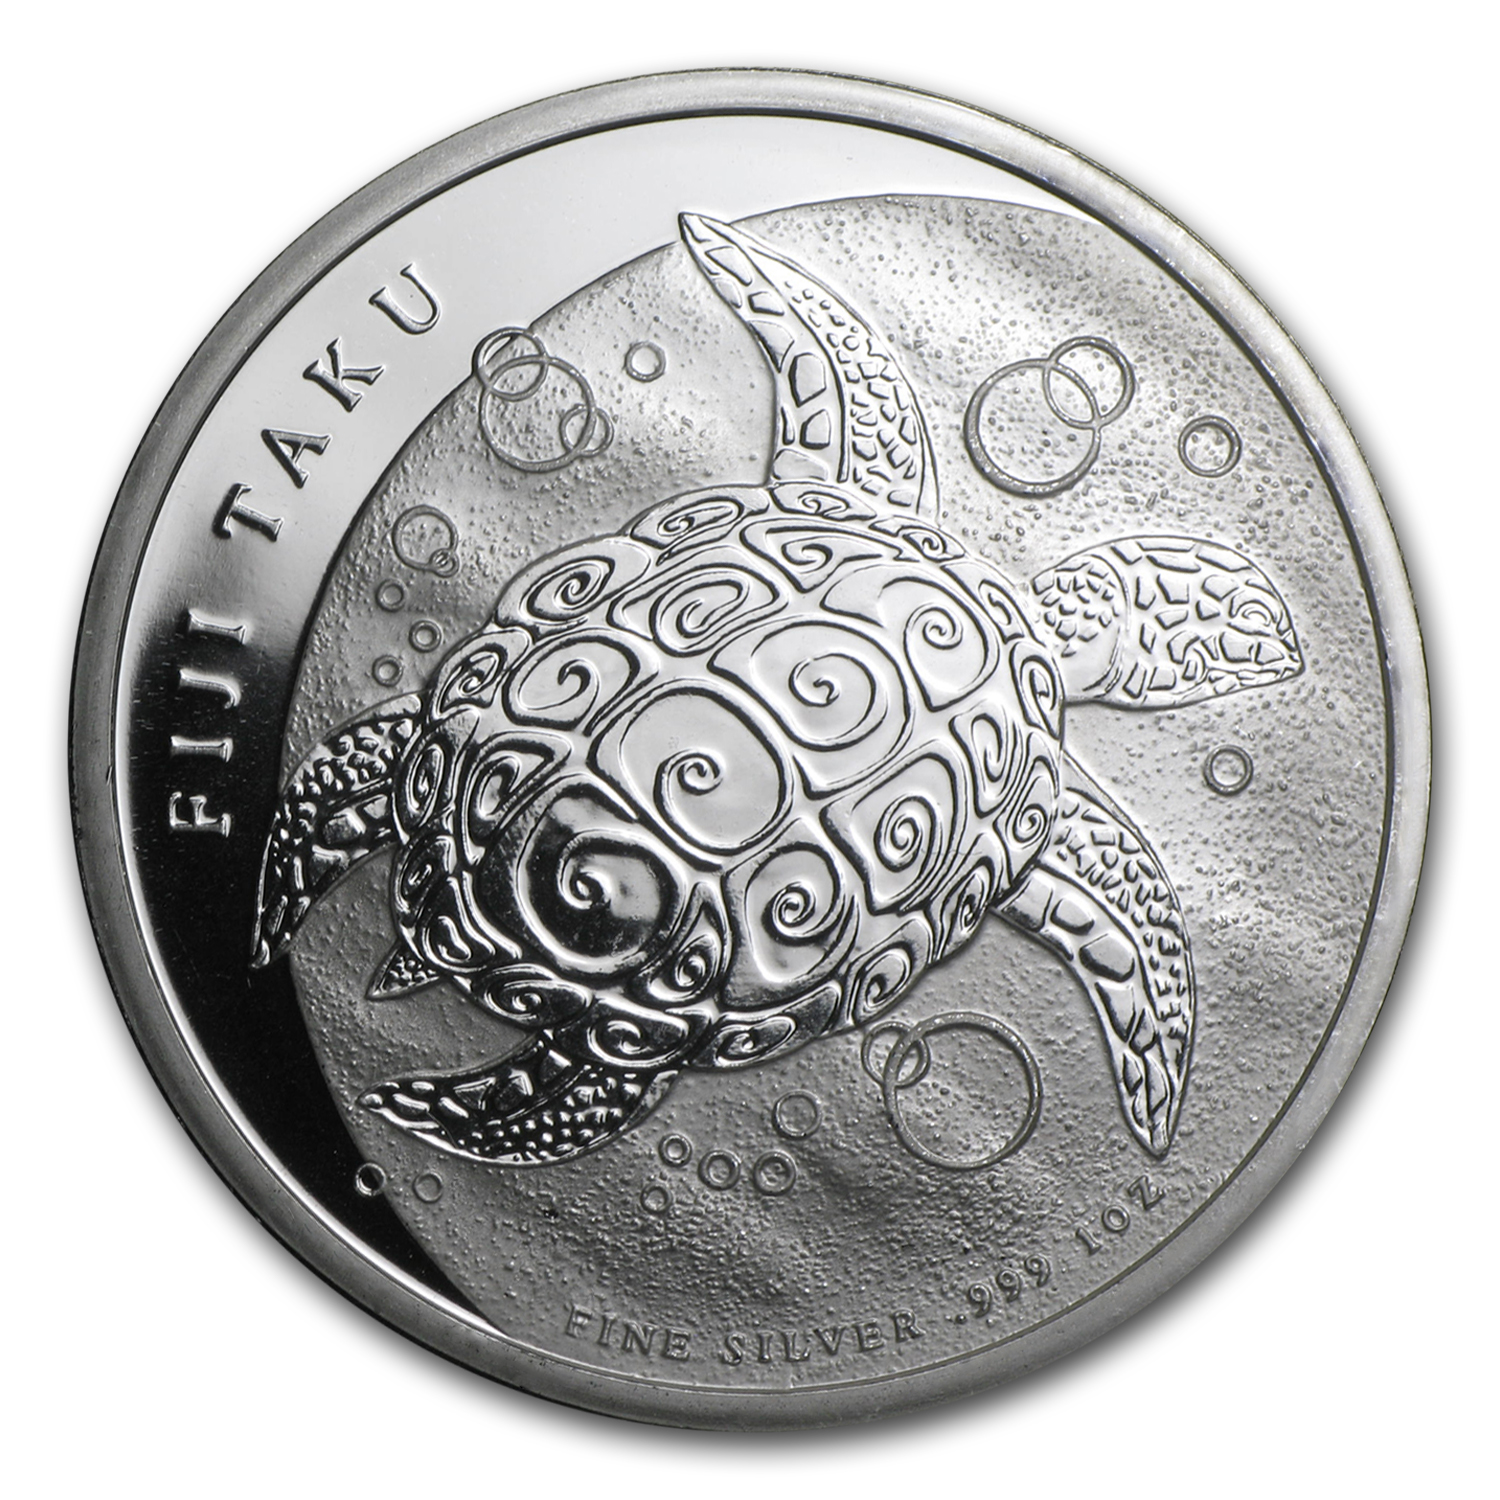 2010 1 oz Silver New Zealand $2 Fiji Taku